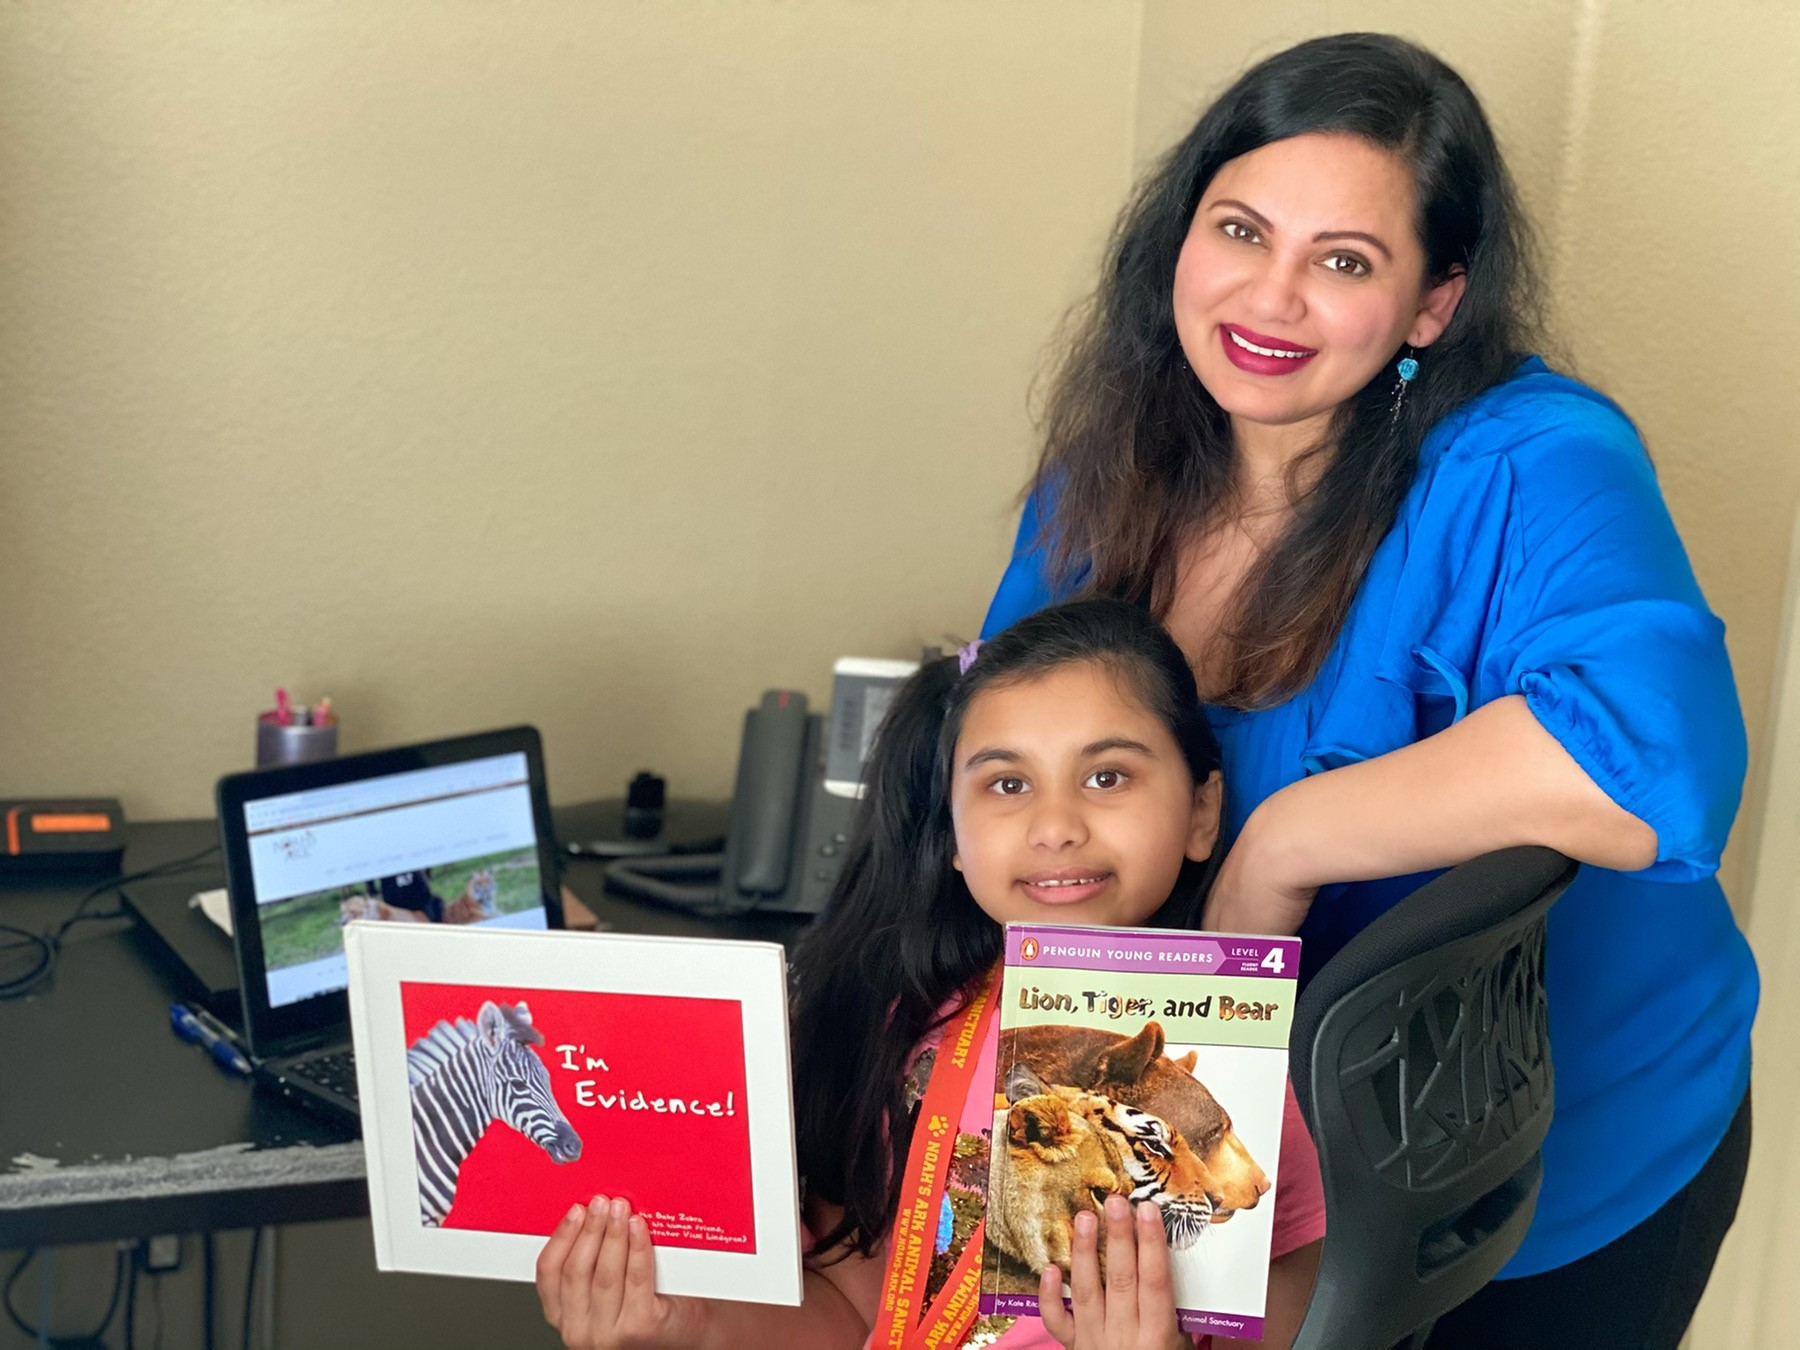 Karishma stadning behind her daughter, while she holds up books that she's read